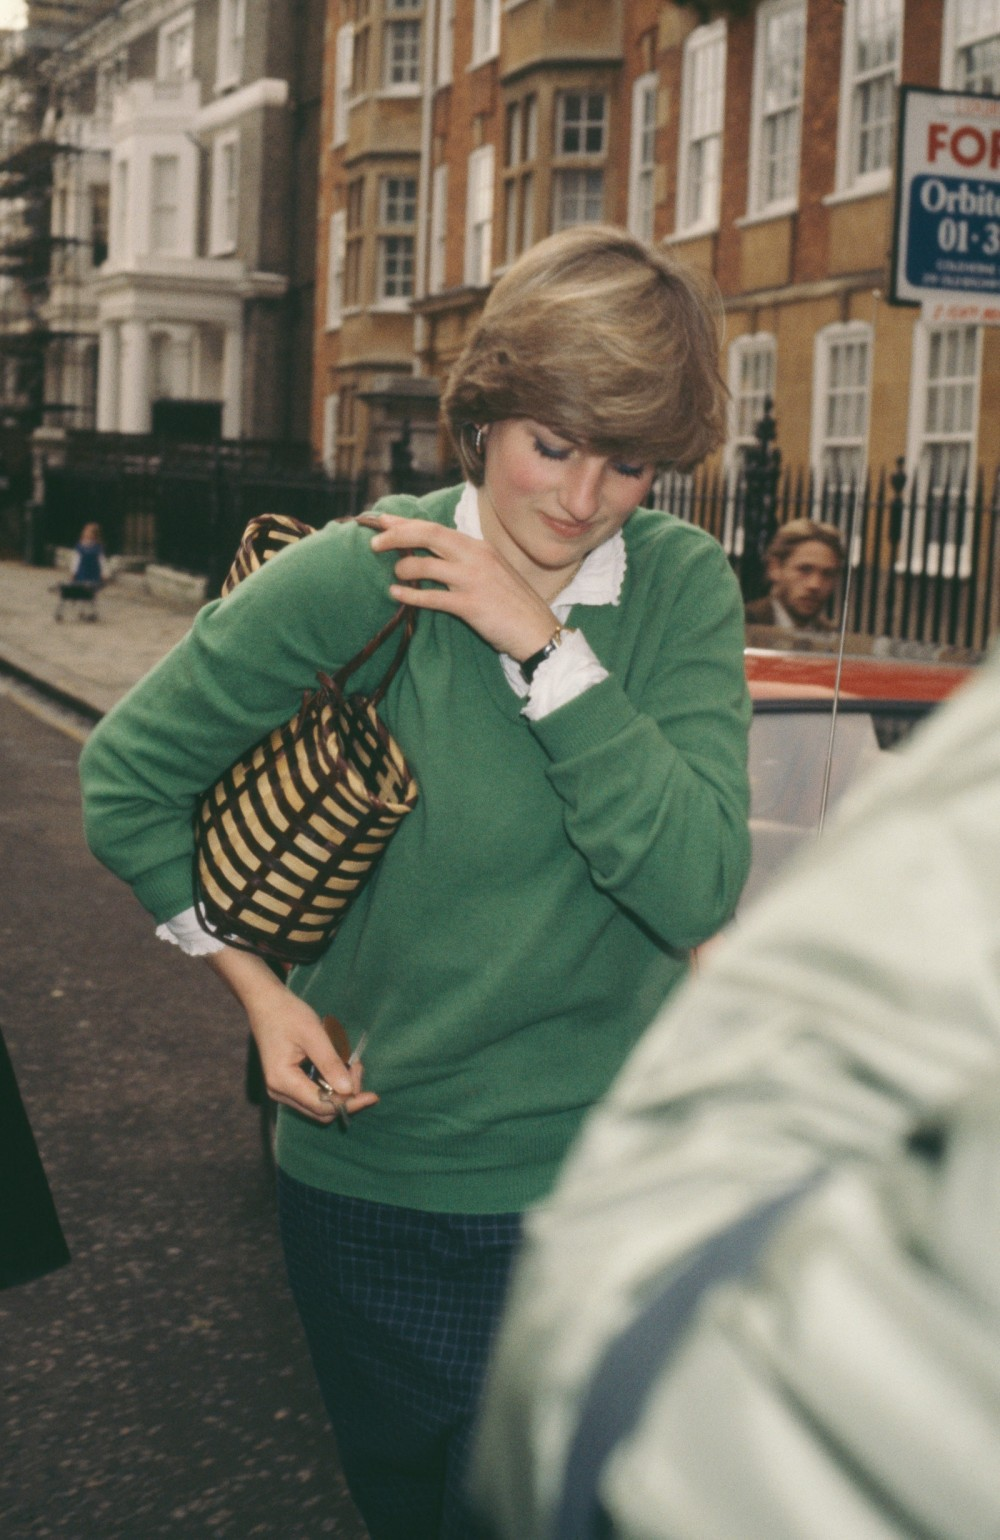 A paparazzi photo of sweaterclad Diana from 1980.